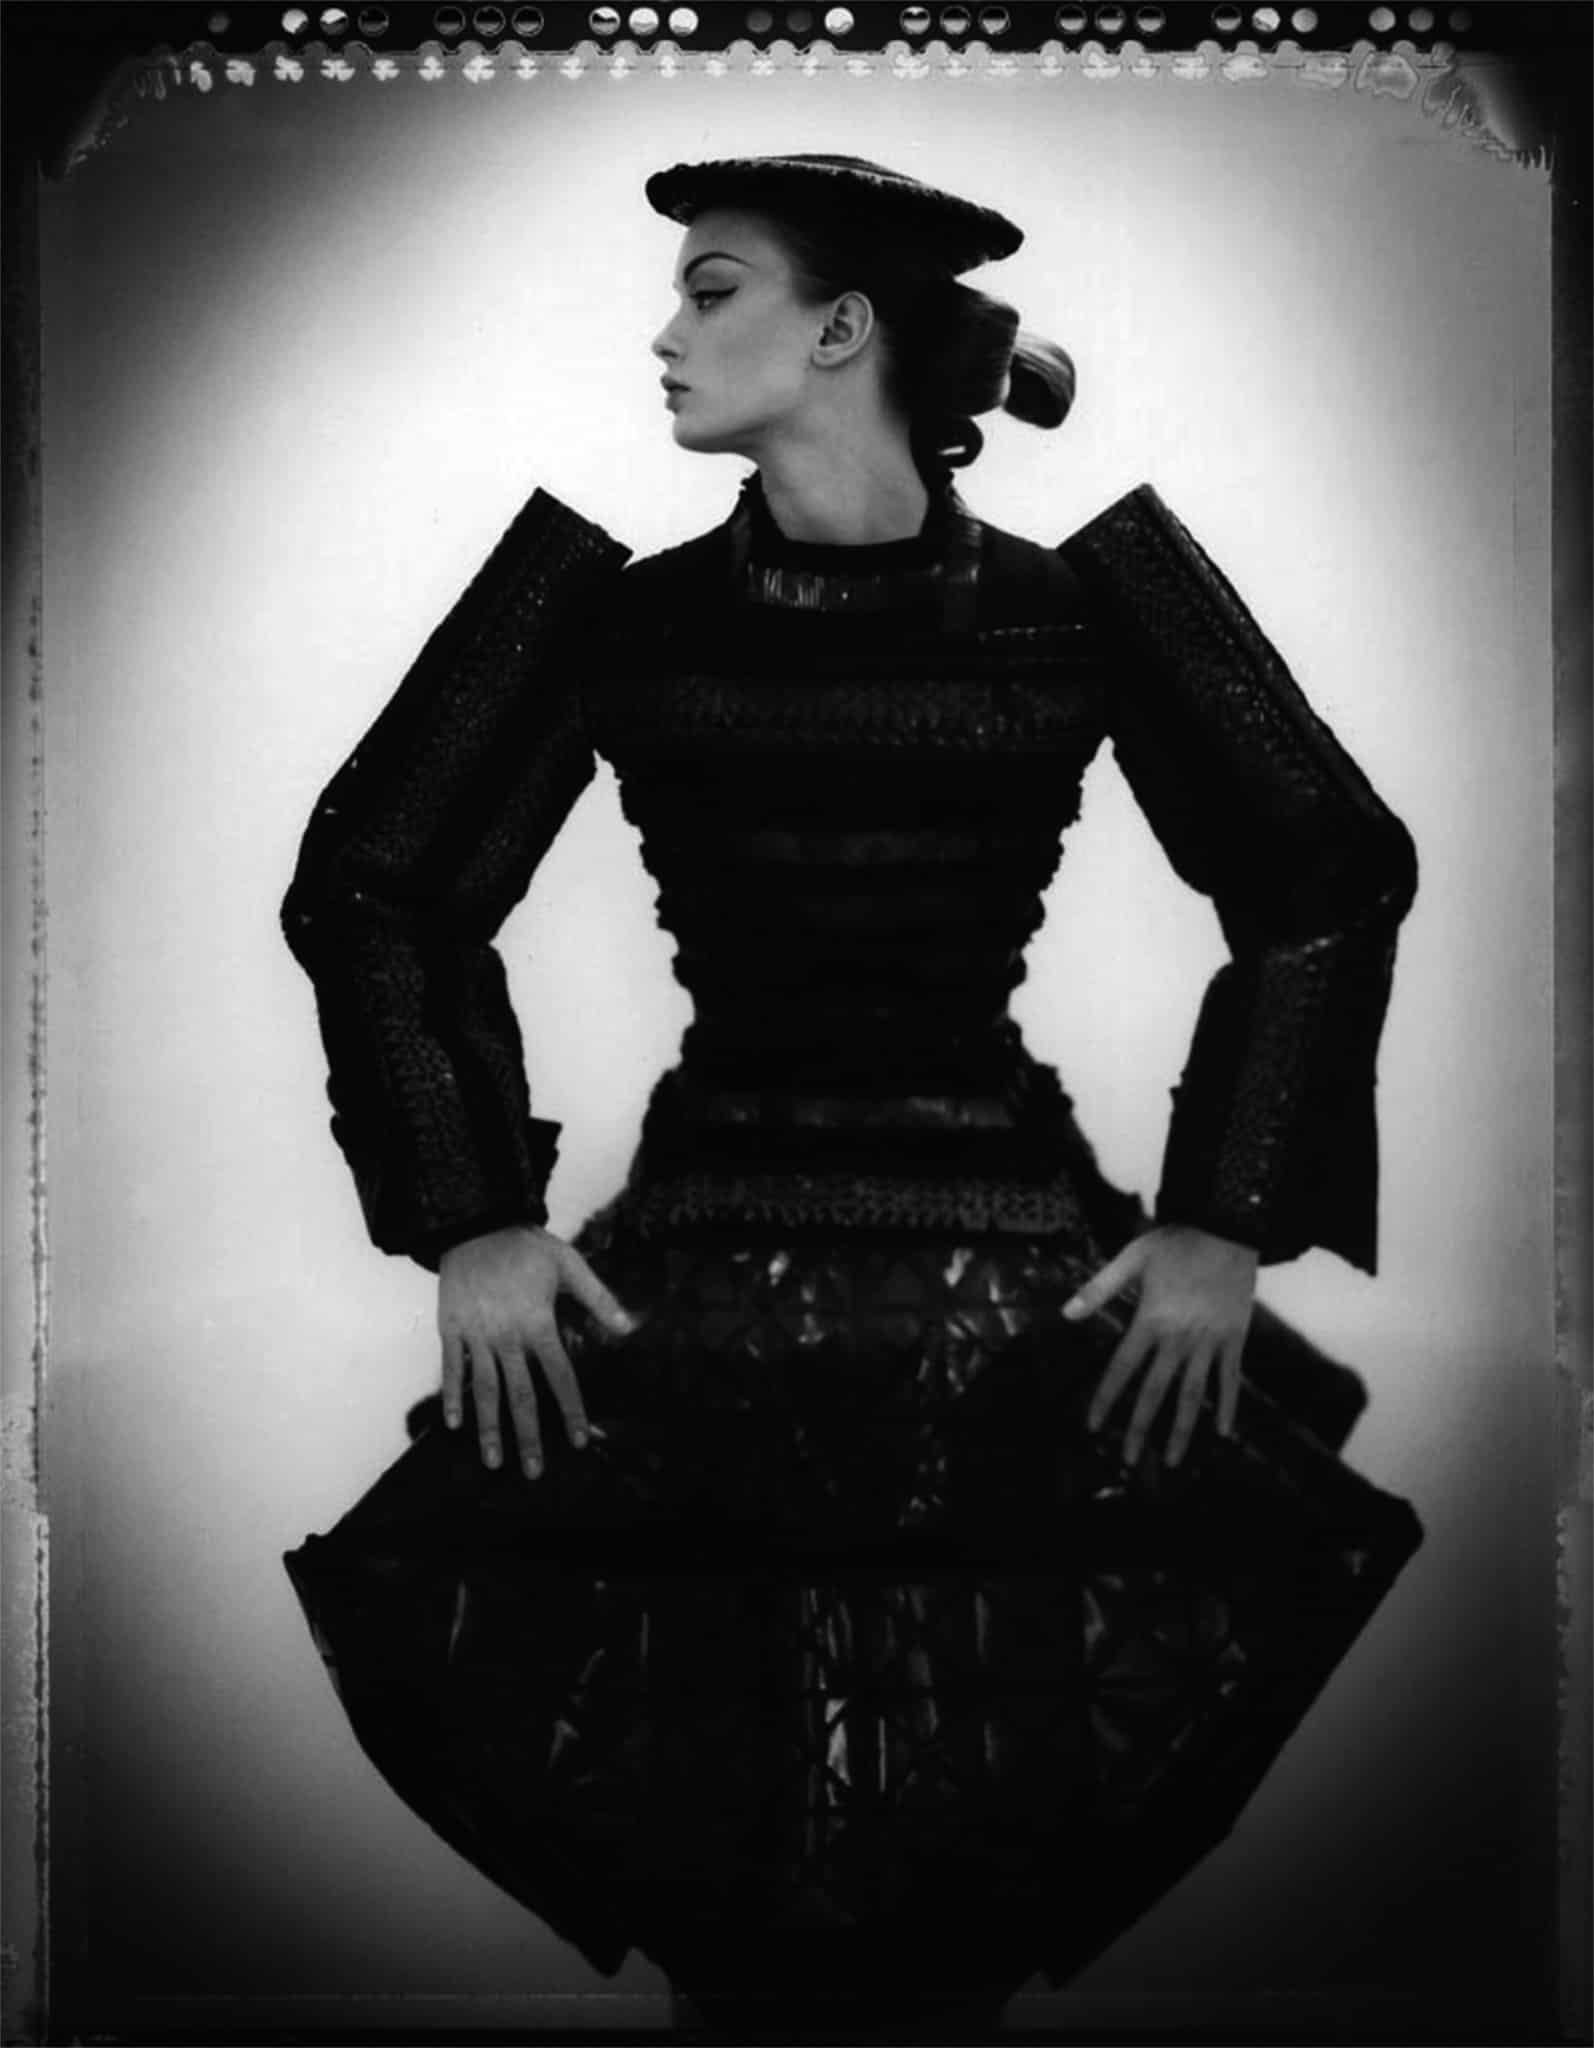 Fine art b/w photography of a fashion model wearing haute couture DIOR by John Galliano, Japanese Collection, hat by Steven Stones.